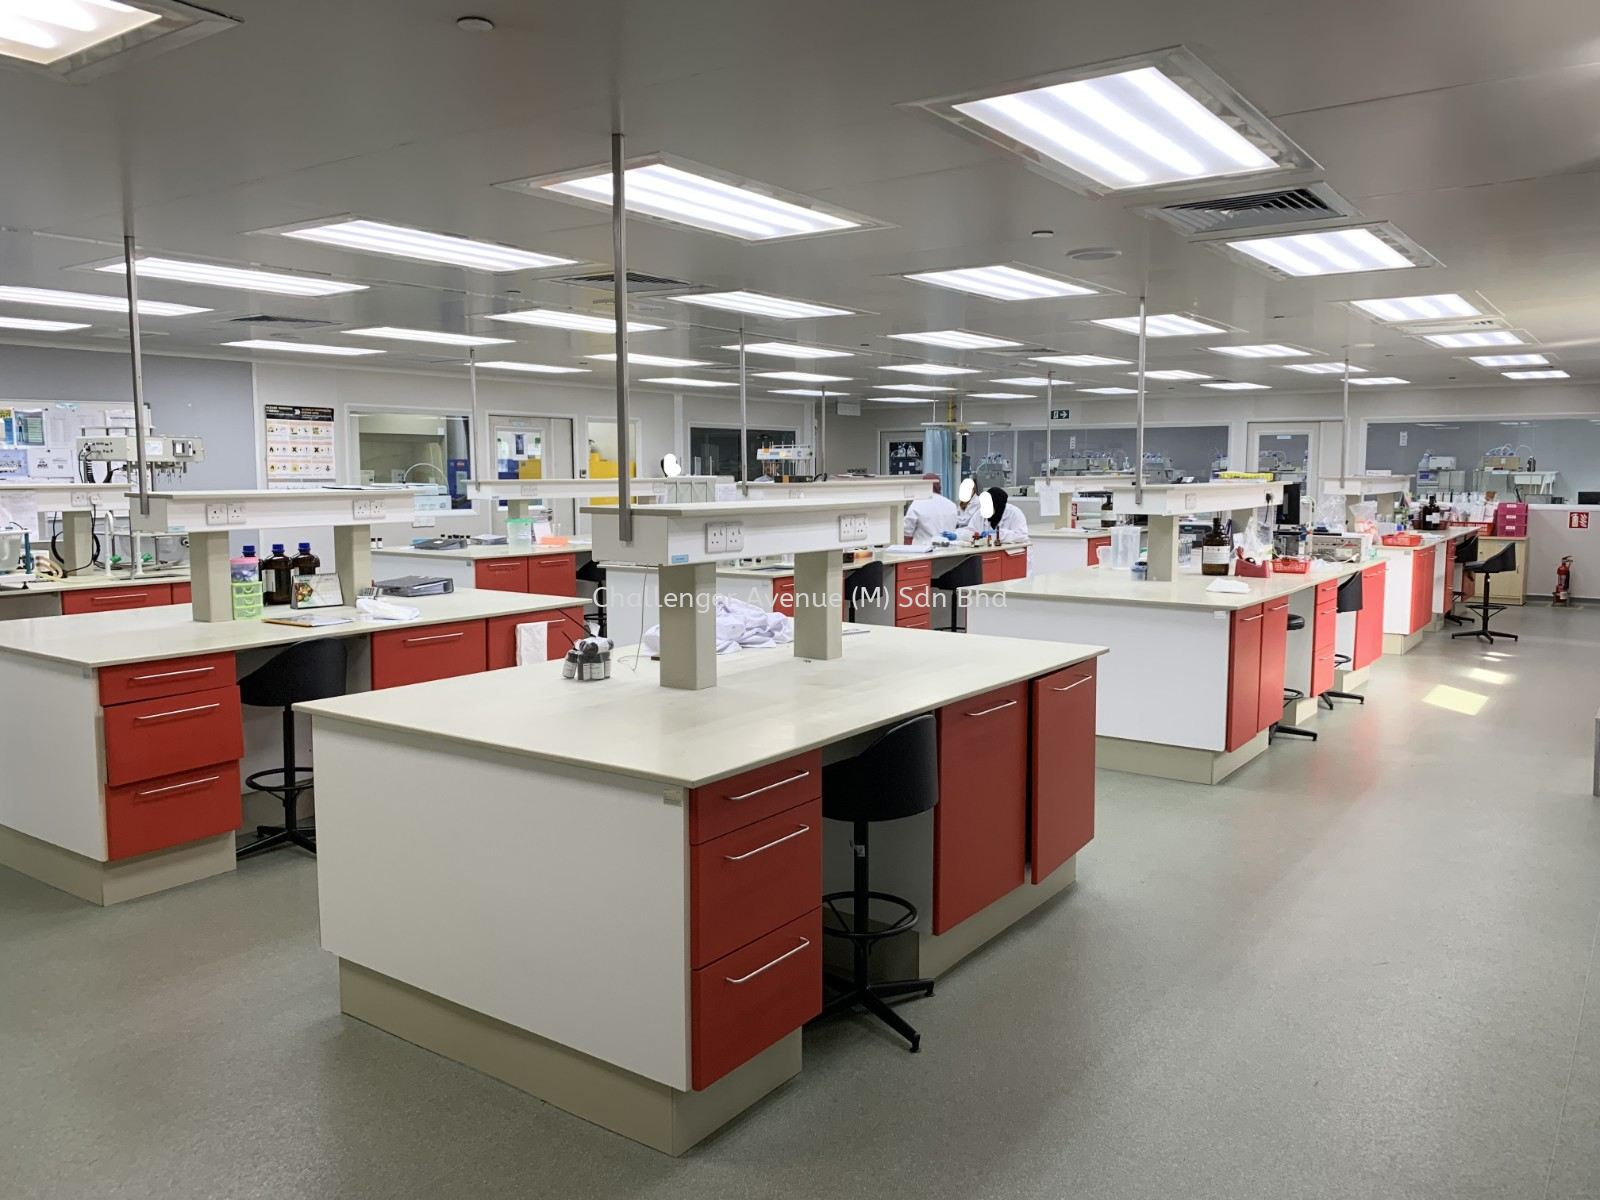 Laboratory Furniture - Red